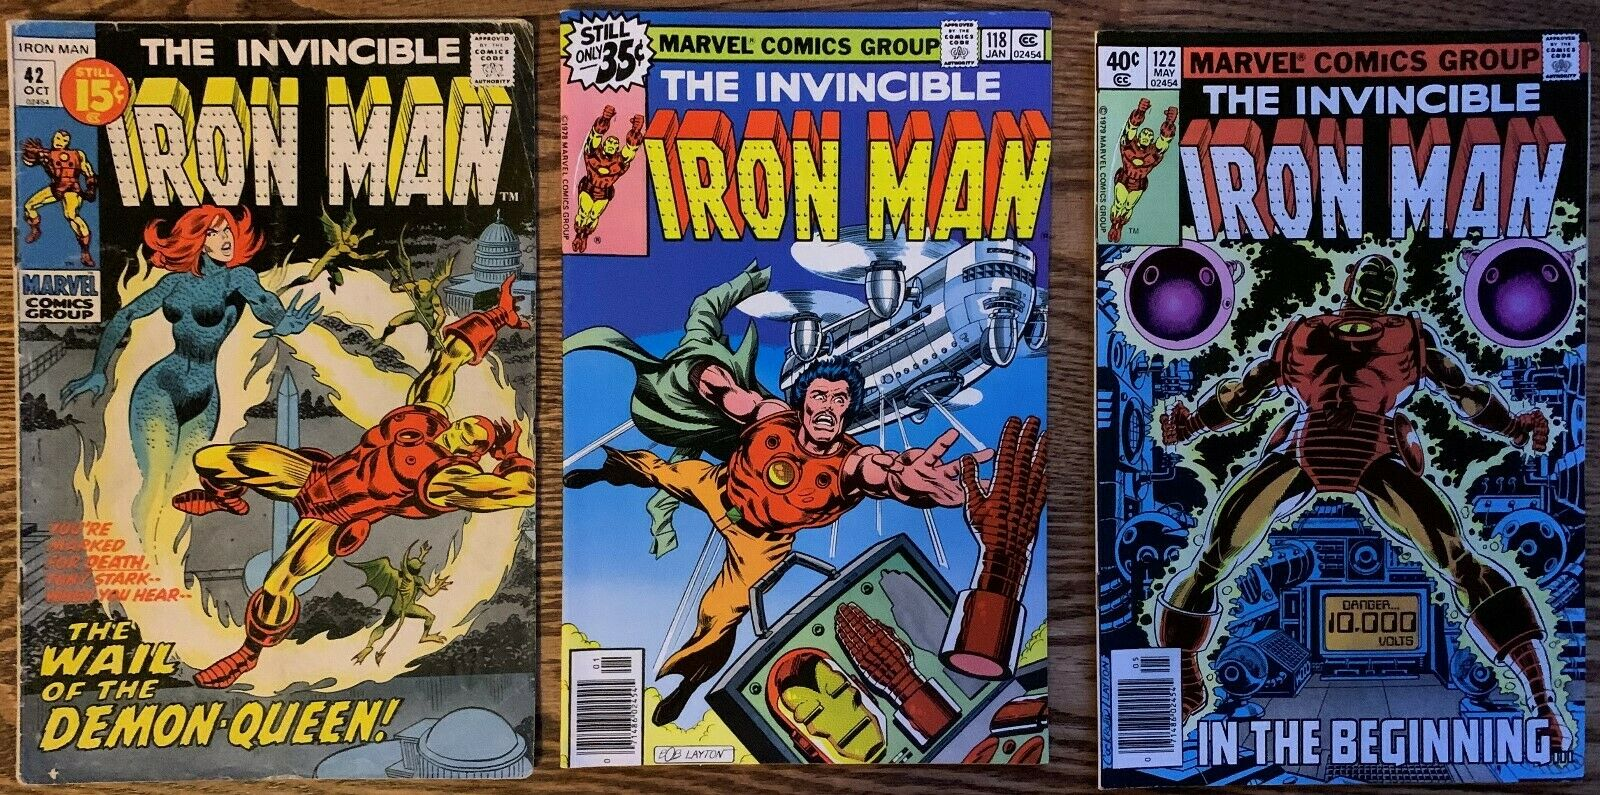 MARVEL IRON MAN 1971-1979 42, 118, 122-131 COMPLETE RUN :: AVERAGE GRADE F/VF